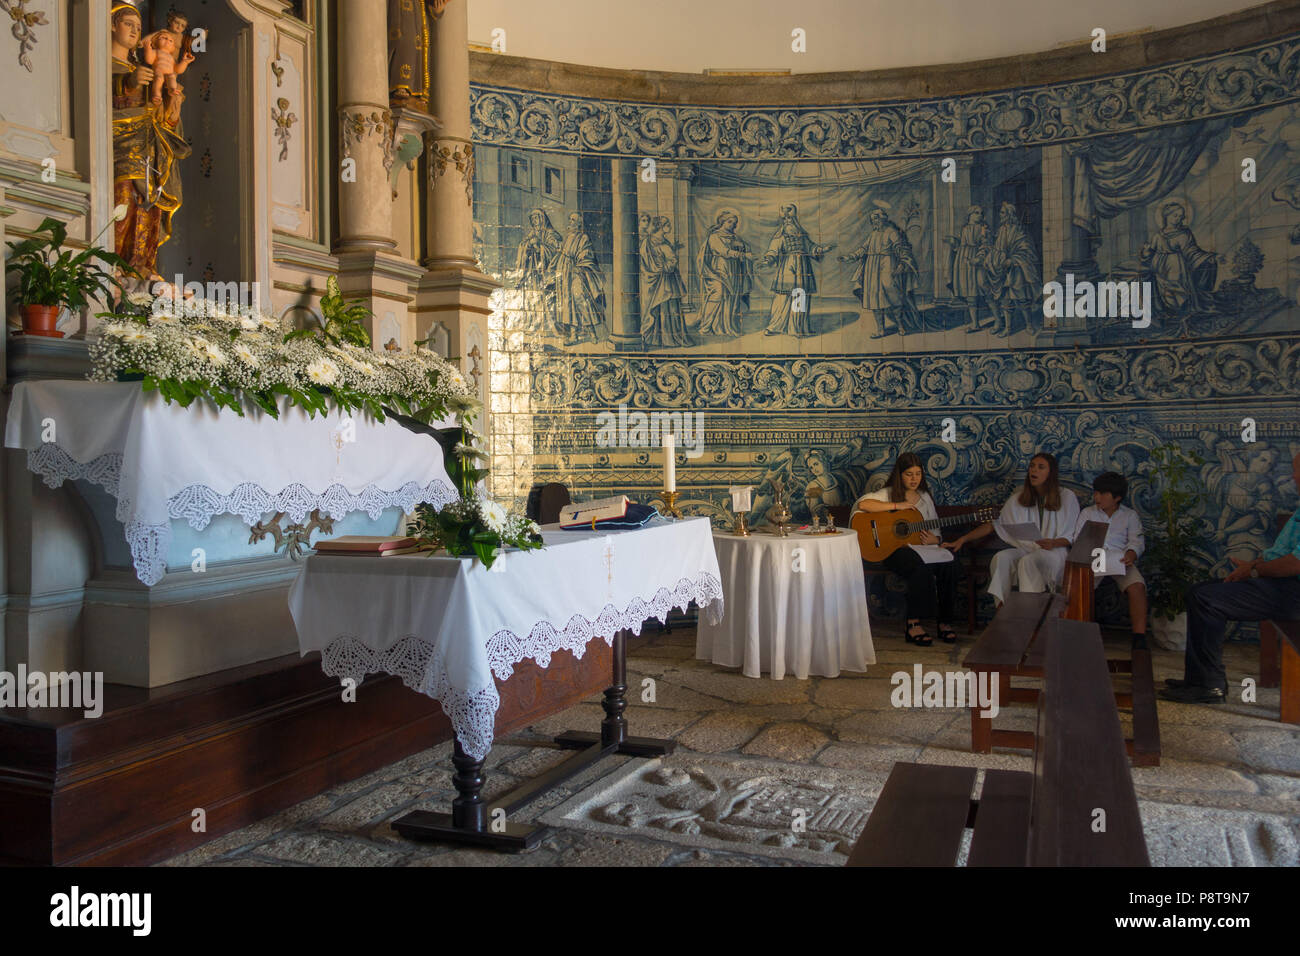 The round interior of Capela do Socorro, Vila do Conde, lined with blue azulejos depicting the life of Christ. Musicians welcoming a baptism party. Stock Photo